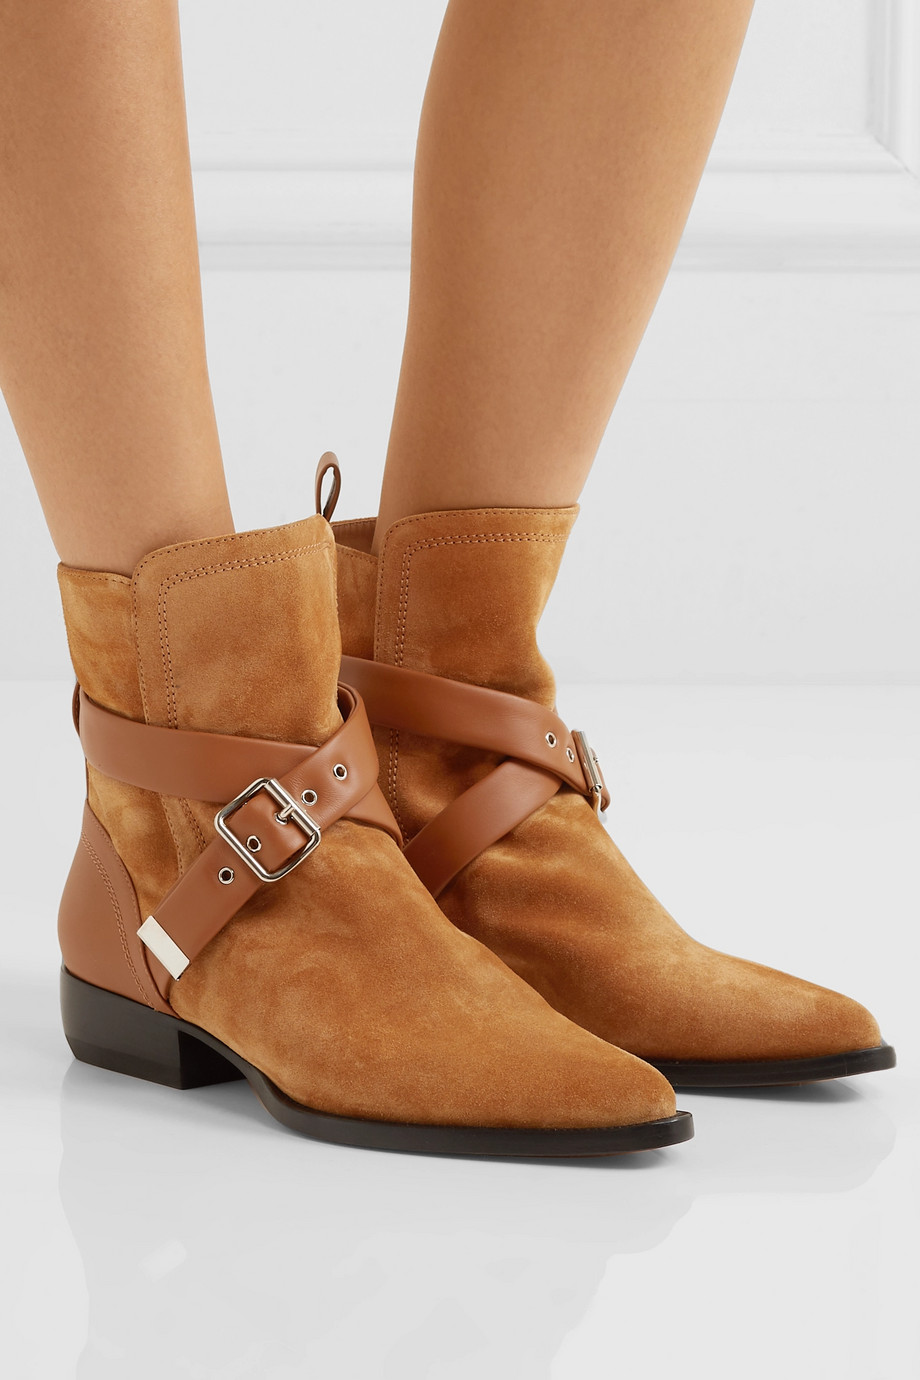 CHLOÉ Rylee suede and leather ankle boots